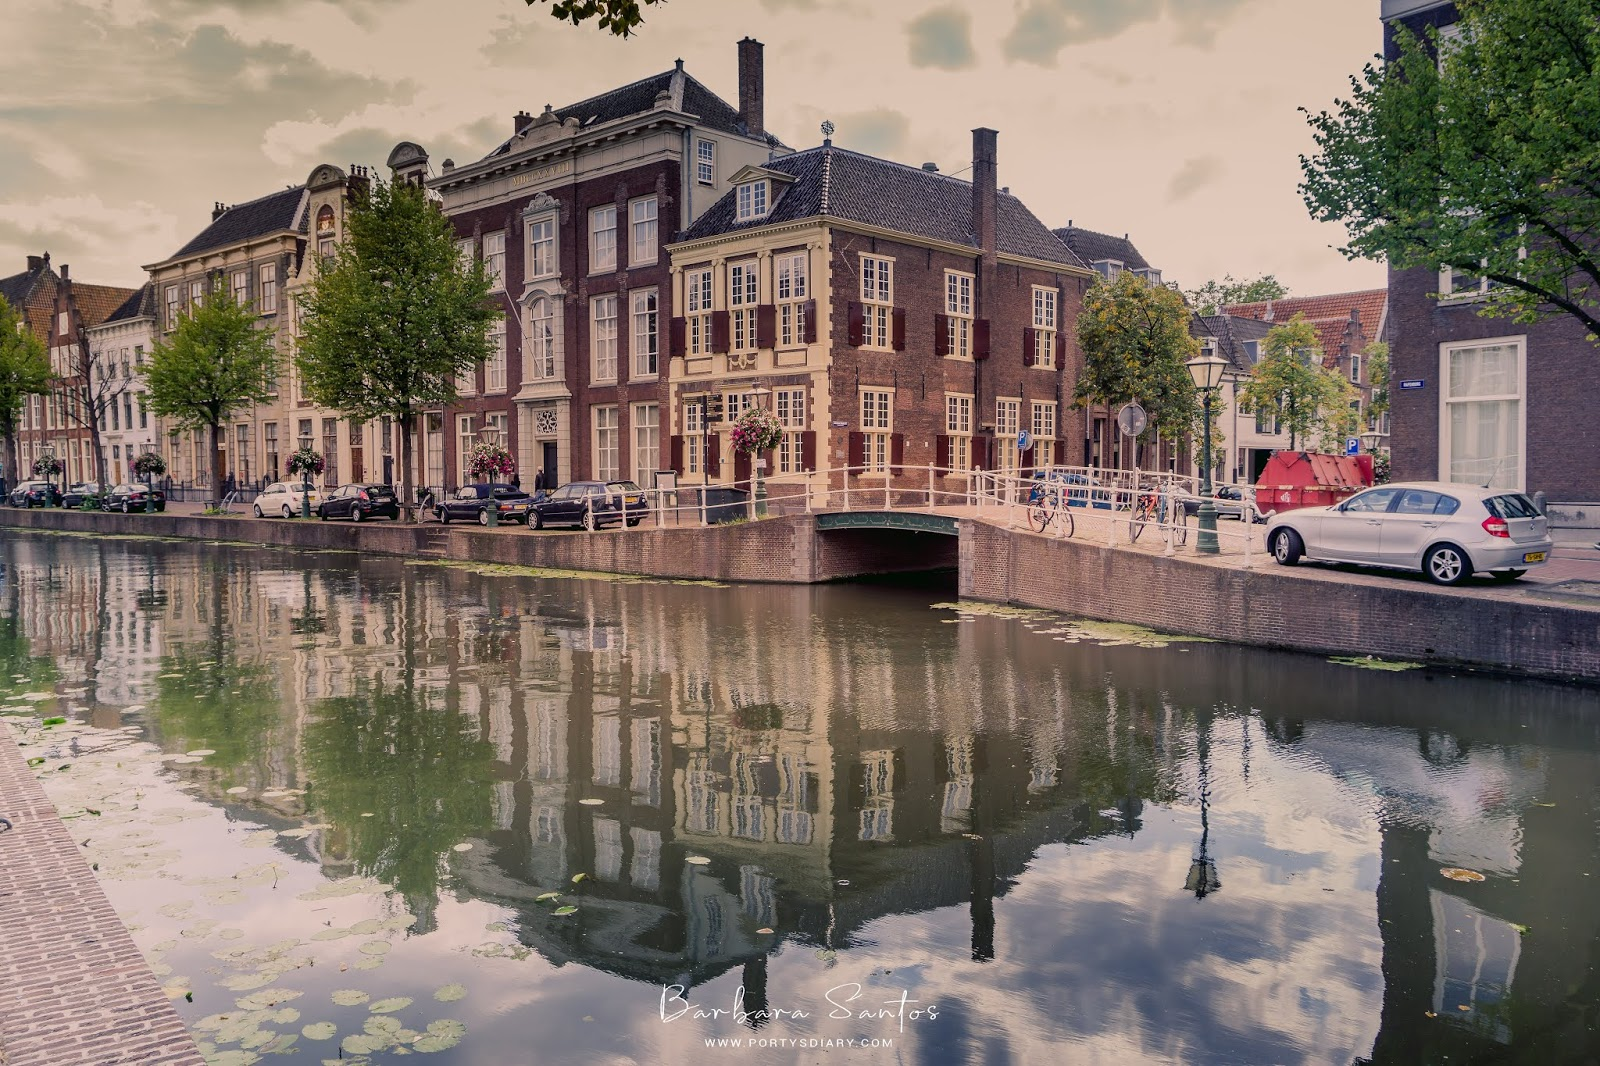 Travel - A weekend in the beautiful city of Leiden, in the Netherlands.